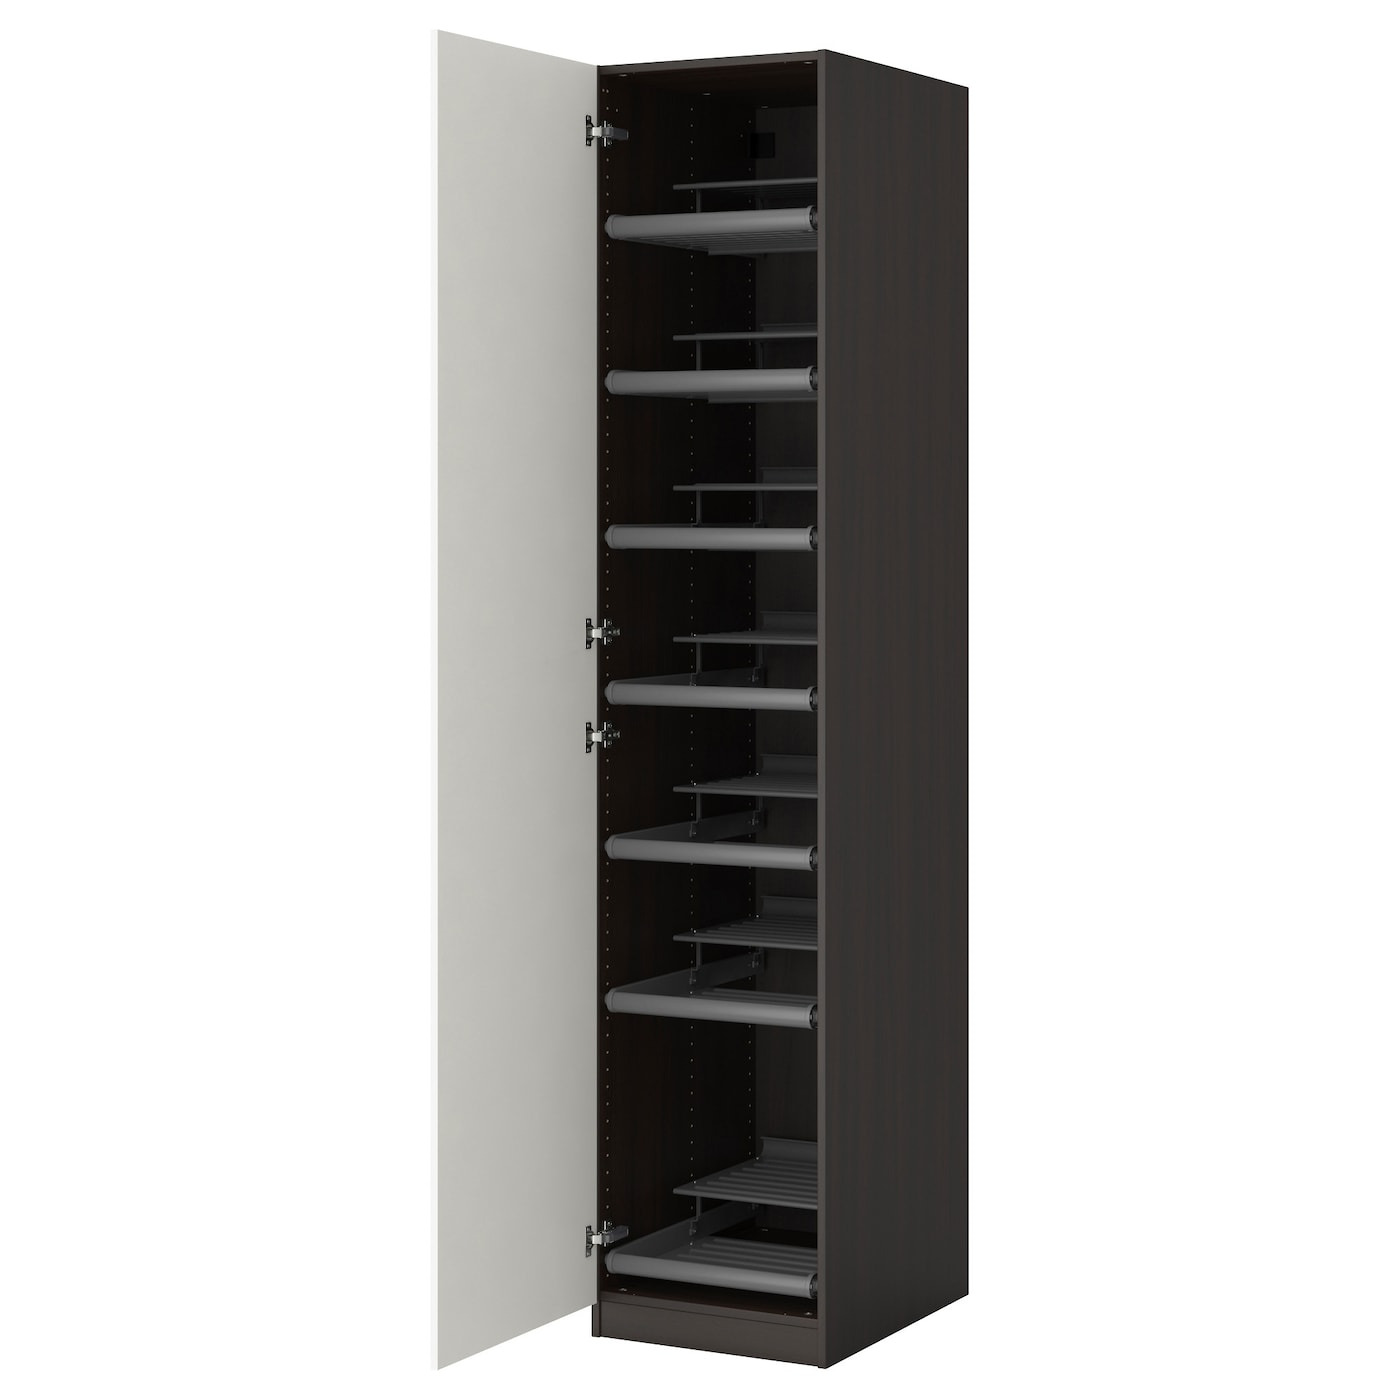 pax wardrobe black brown ballstad white 50x60x236 cm ikea. Black Bedroom Furniture Sets. Home Design Ideas